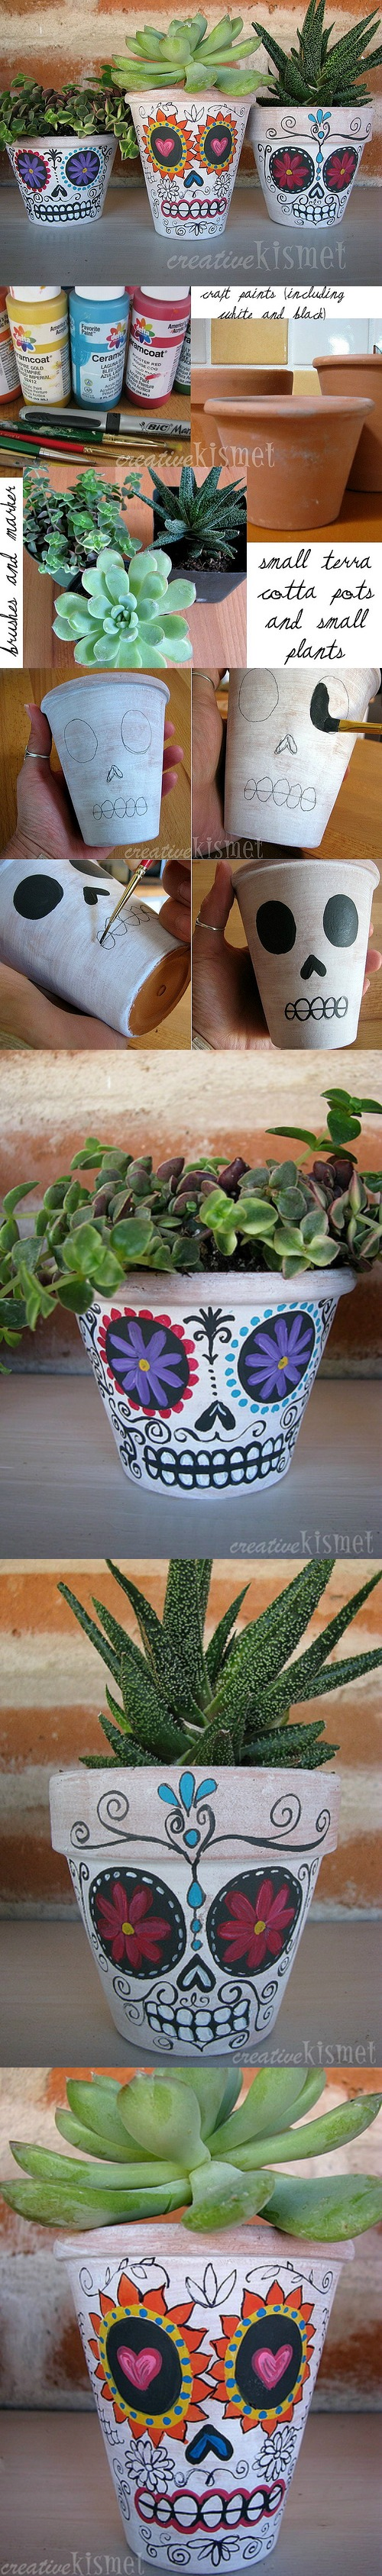 4 Day of the Dead Planters